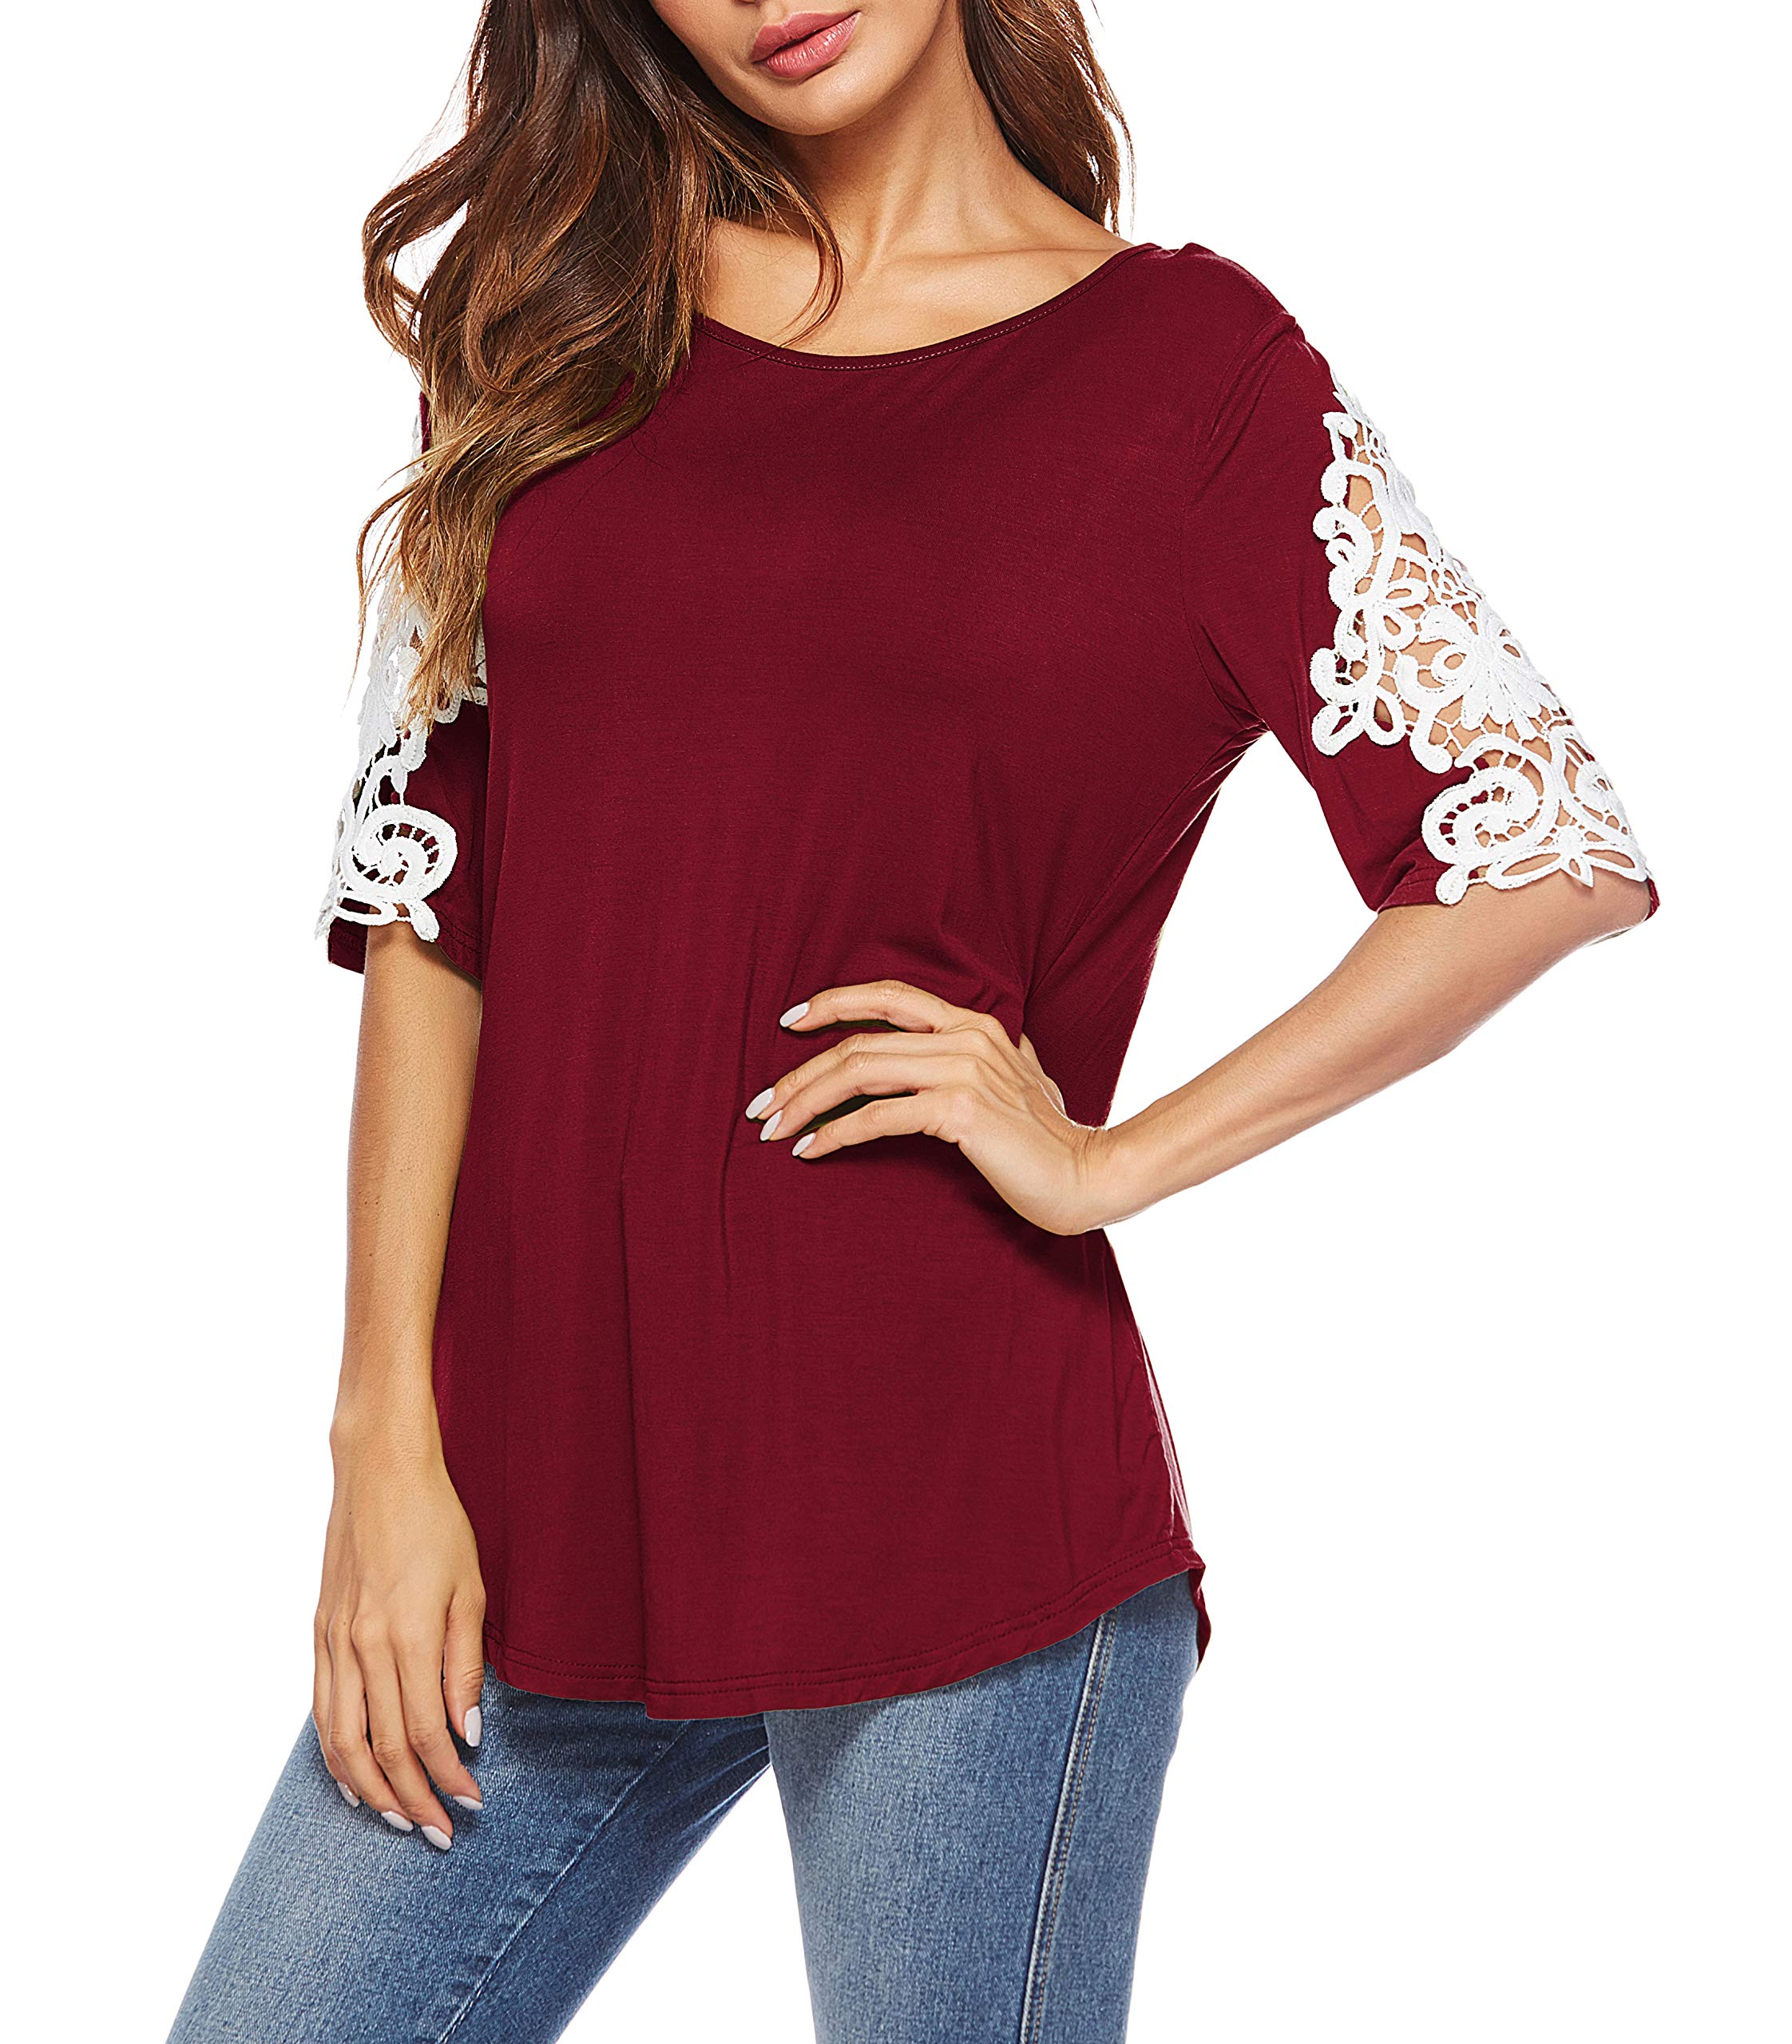 Oyanus Womens Shirts Casual Tee Round Neck Short Sleeve Lace Tunic Tops Blouses Burgundy M